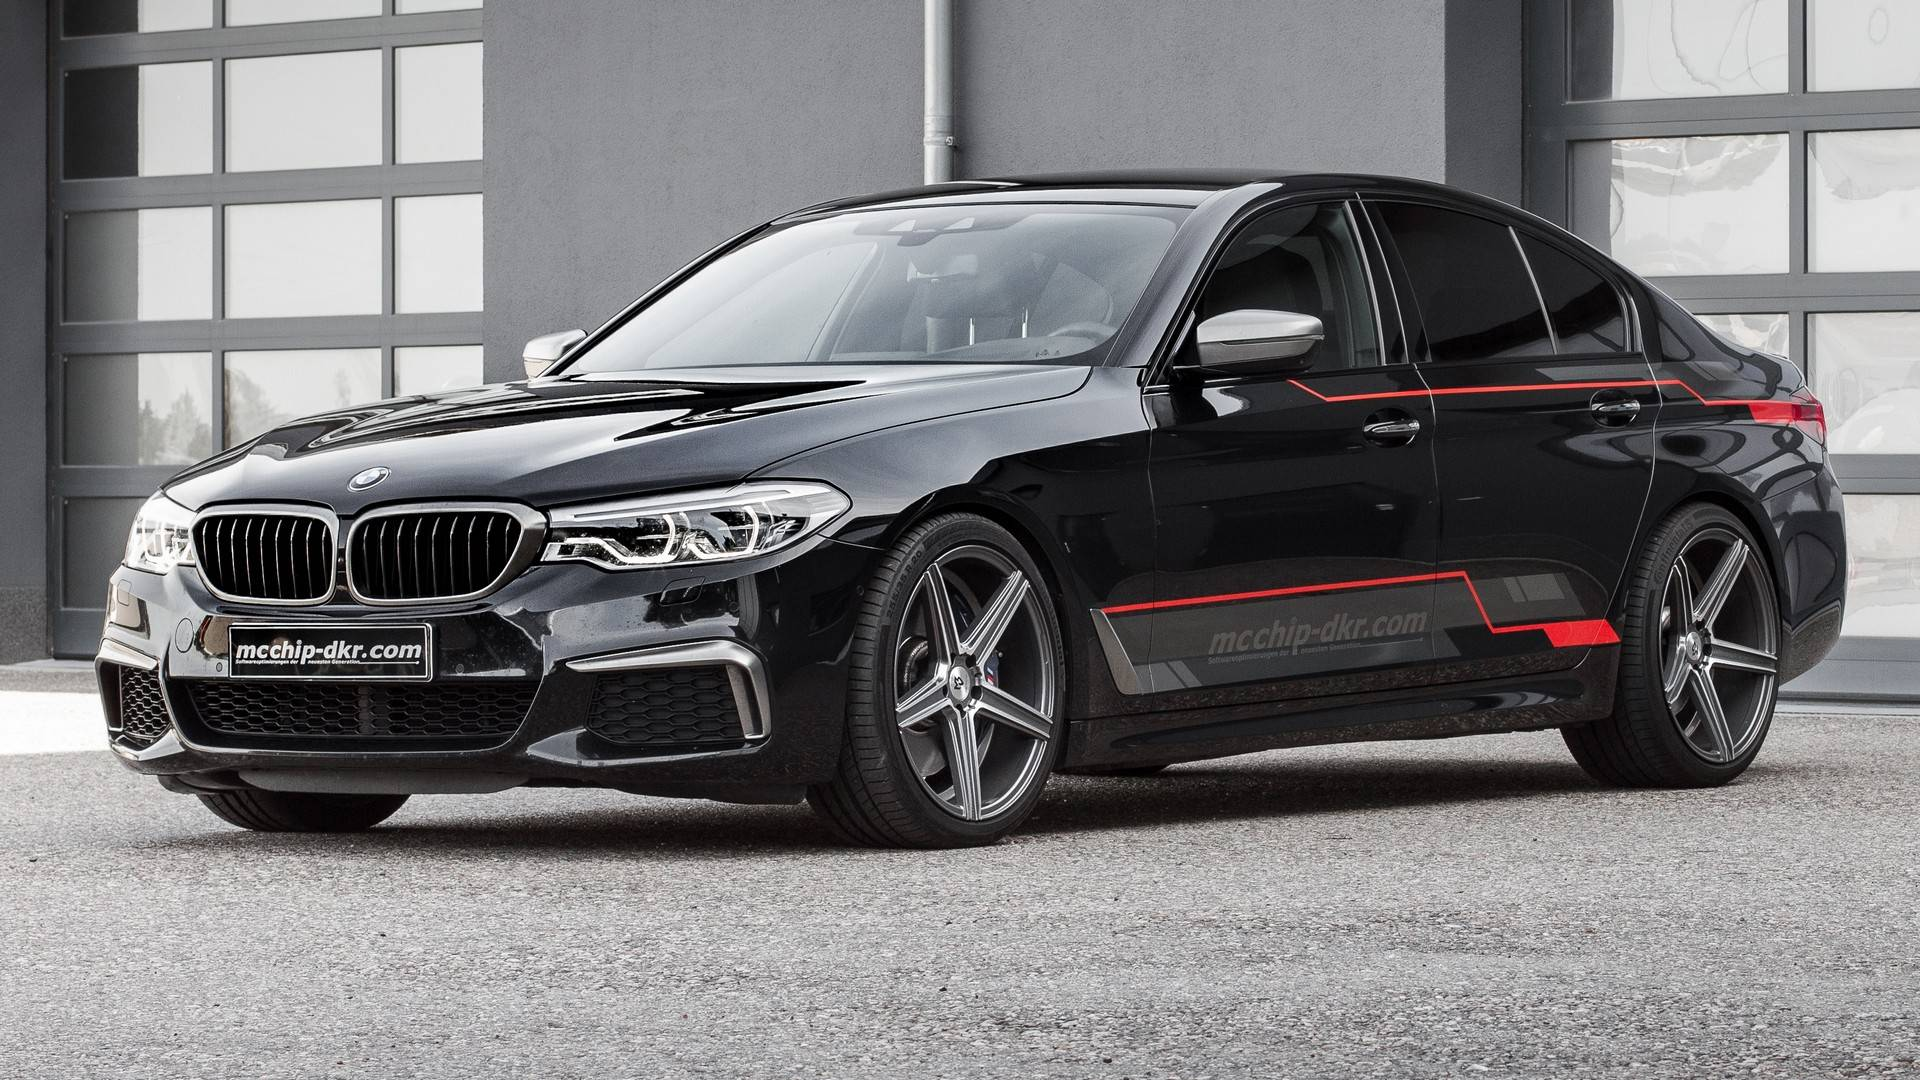 BMW_M550d_xDrive_by mcchip-dkr_02